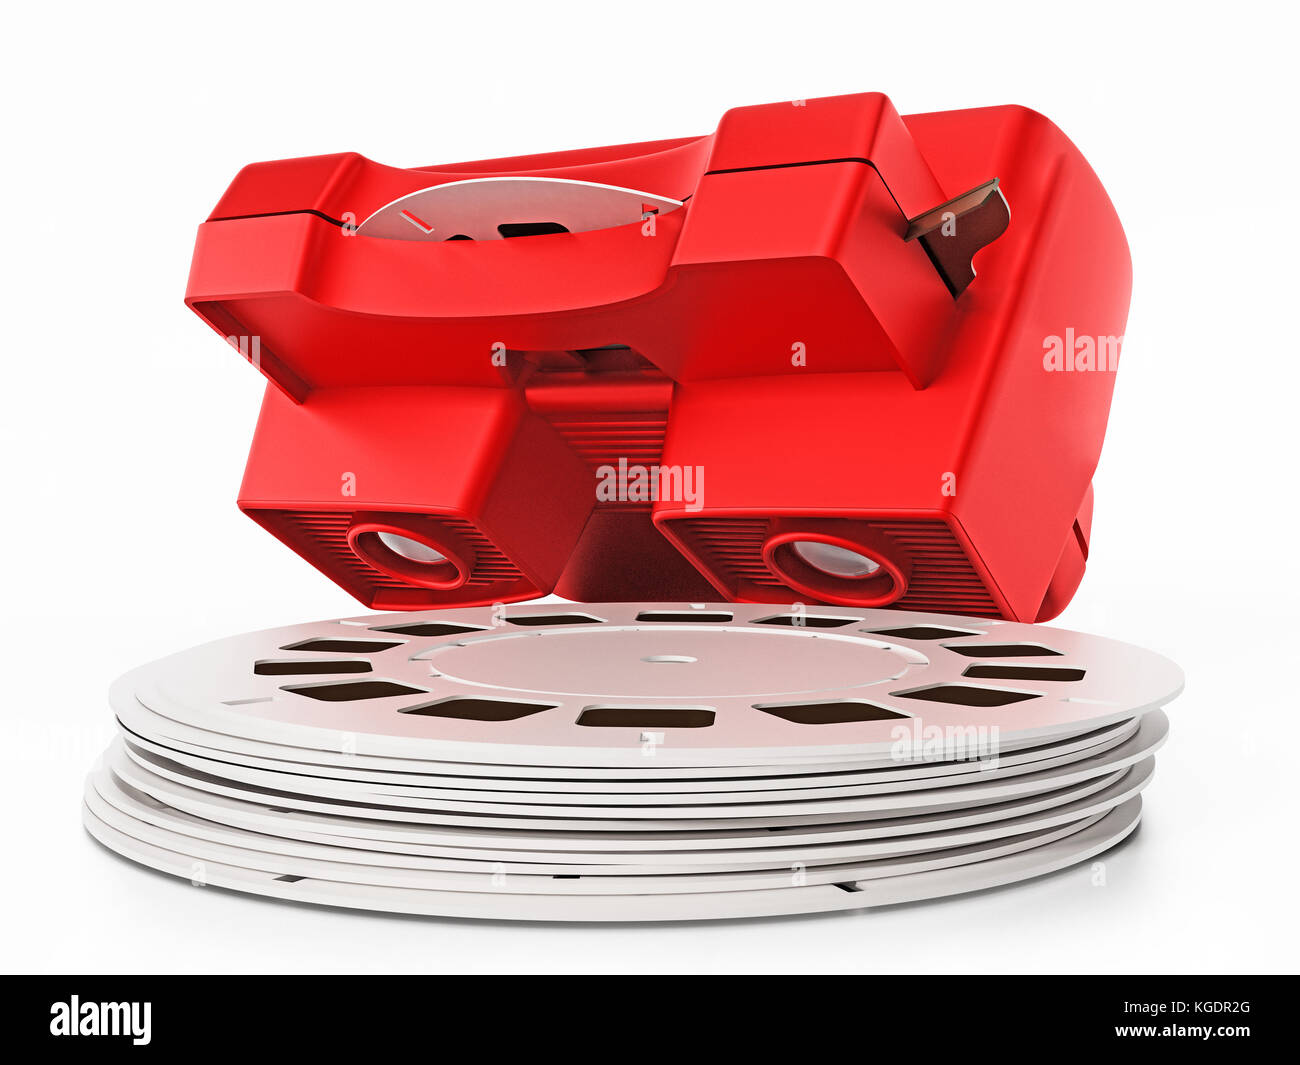 Red vintage 3D slide viewer isolated on white background. 3D illustration. Stock Photo